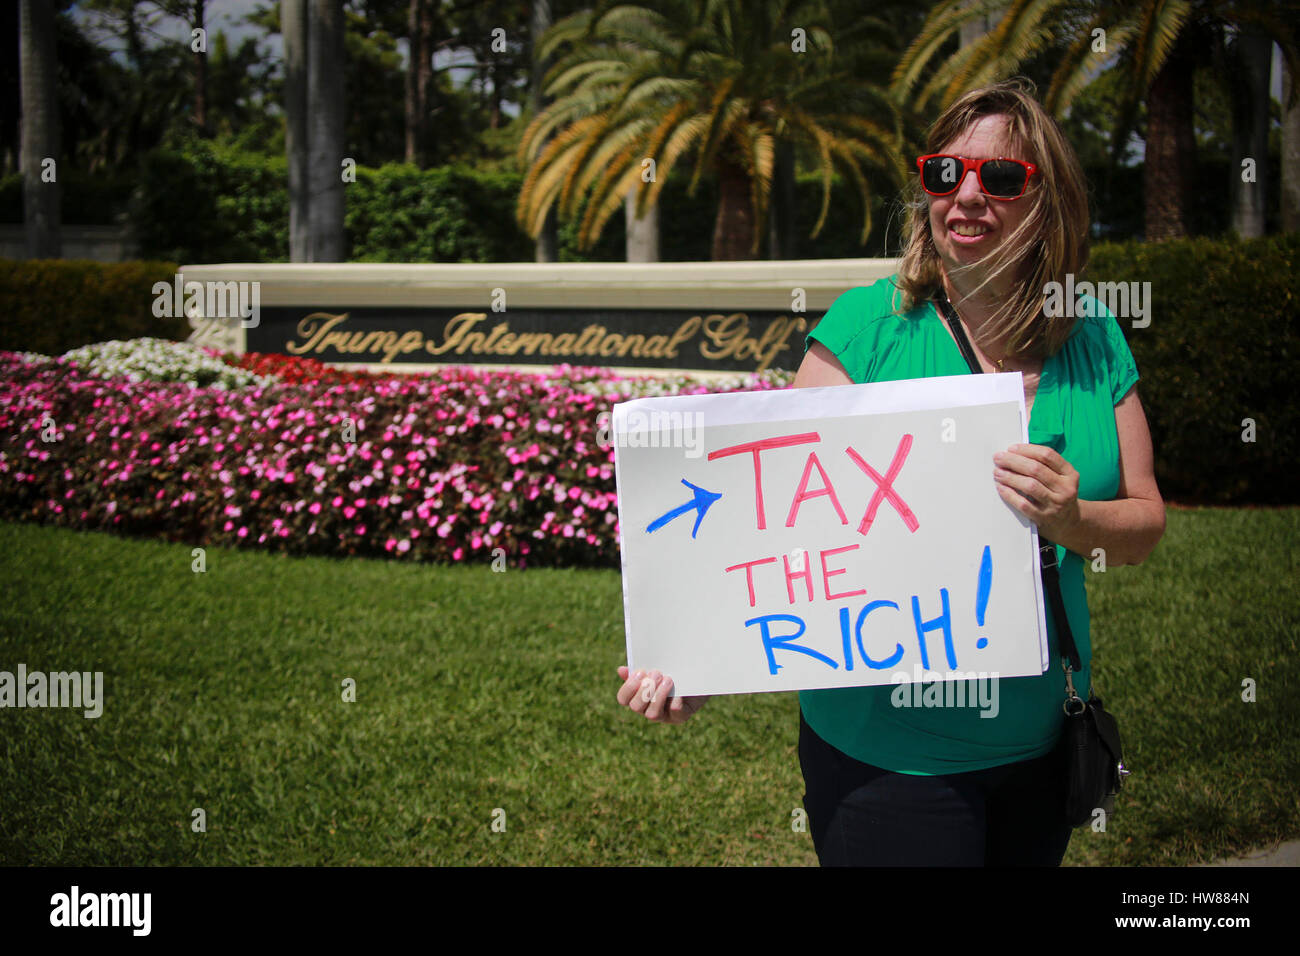 March 18, 2017 - Florida, U.S. - Mary Jane Zapp of West Palm Beach protests outside Trump International Golf Club - Stock Image